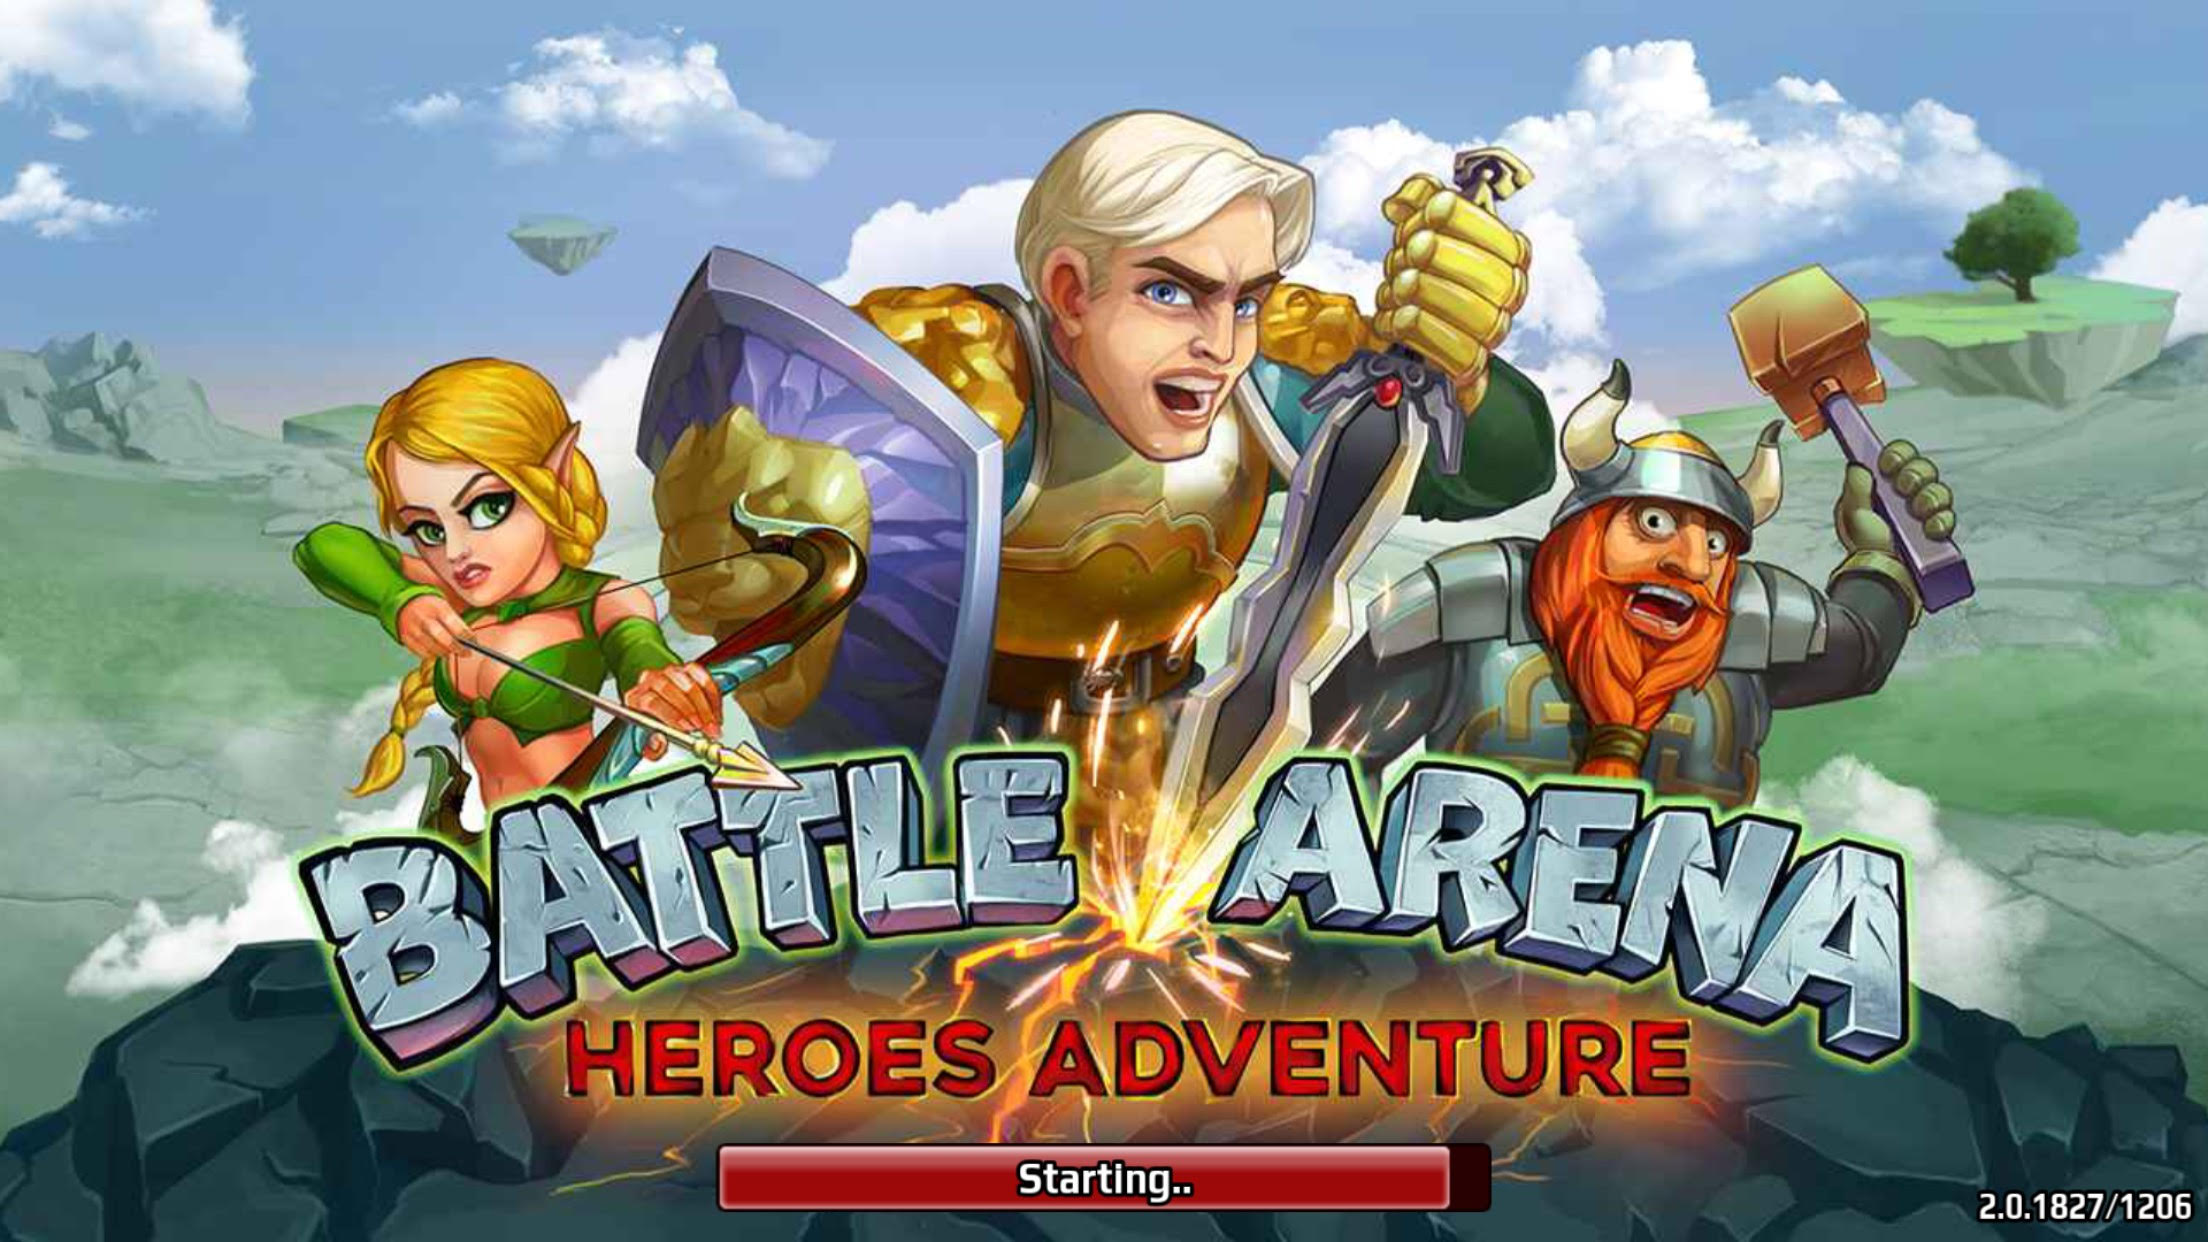 Battle Arena: Heroes Adventure